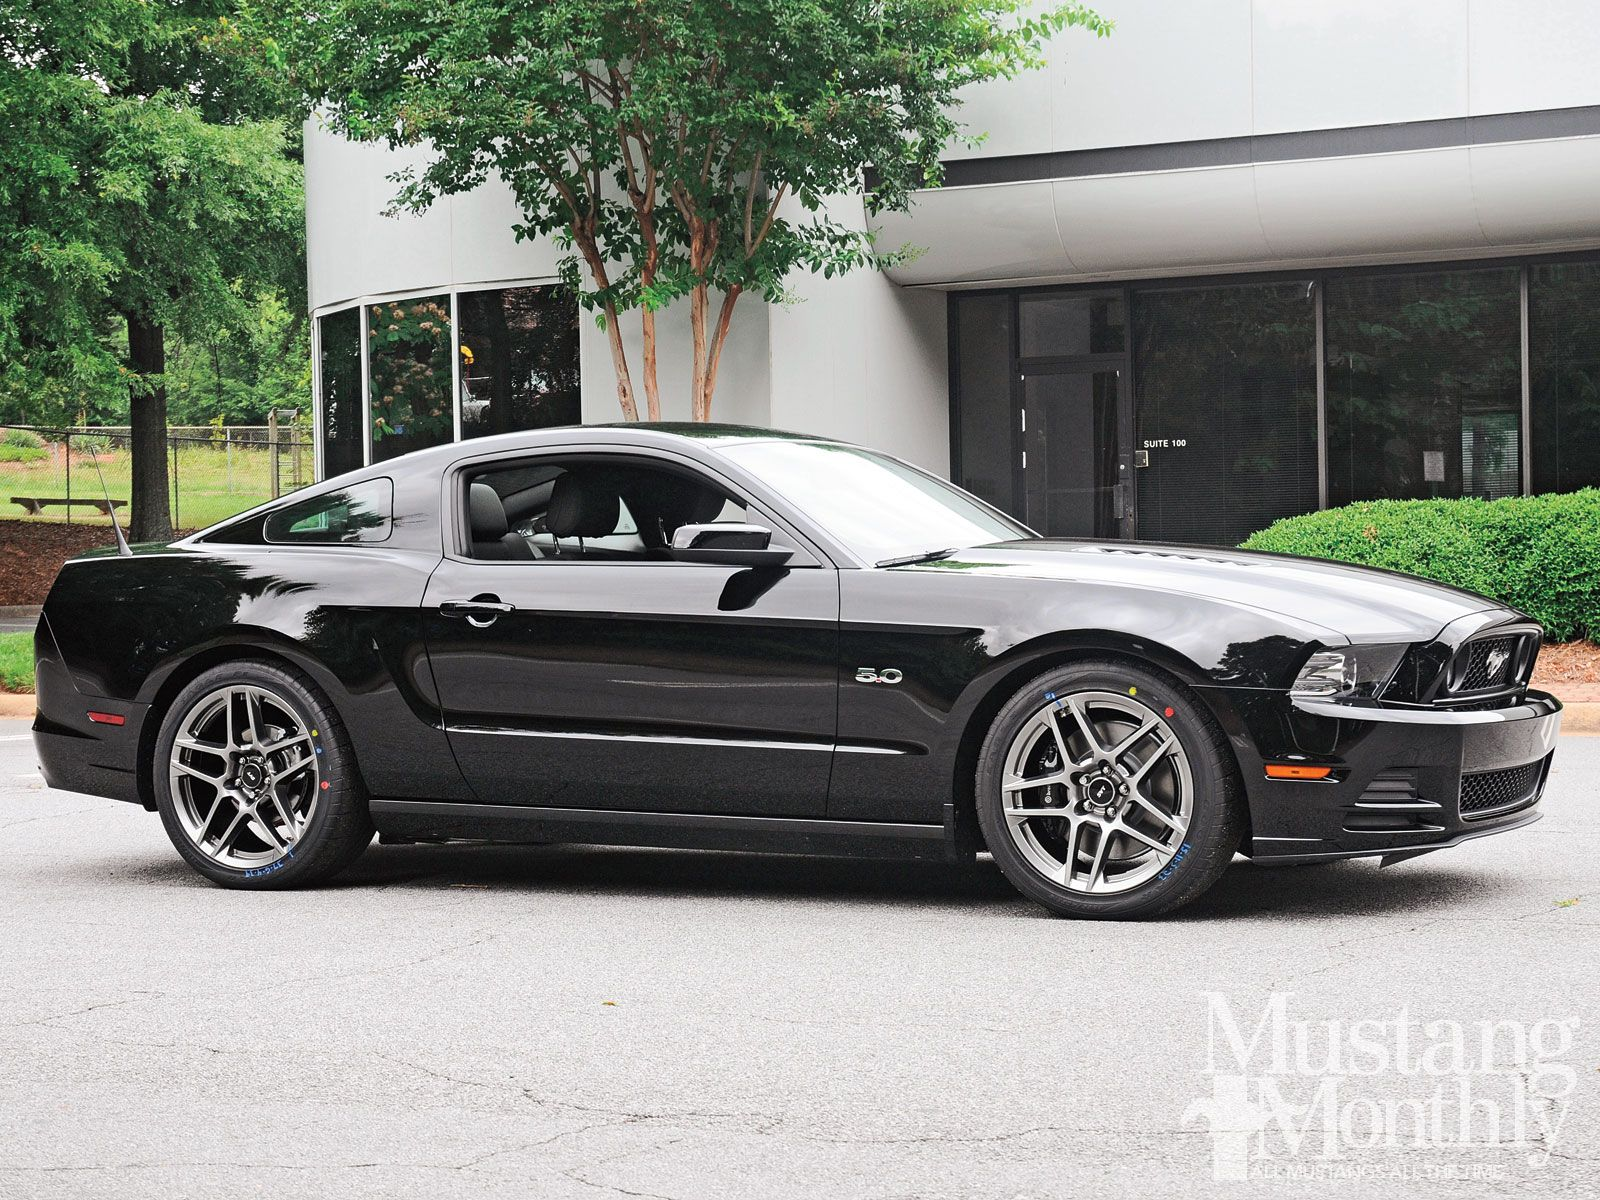 Bravado wheels on this 2013 black ford mustang wheels